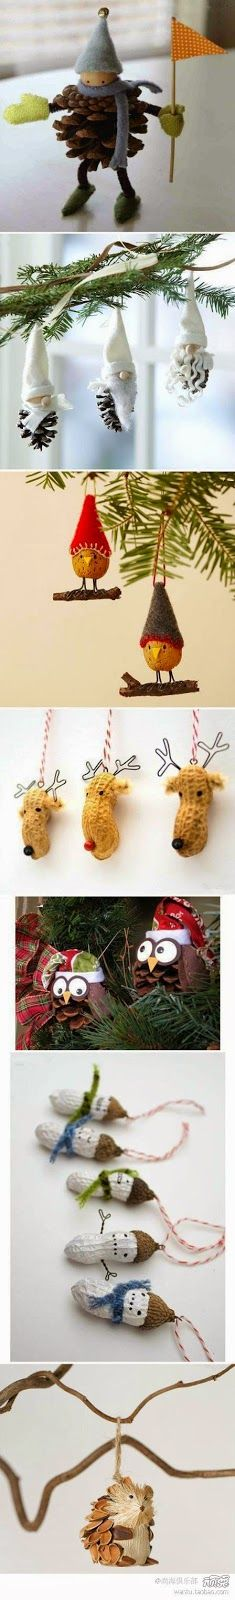 These are cute Poppy Loves Pinterest: Home and Design Ideas